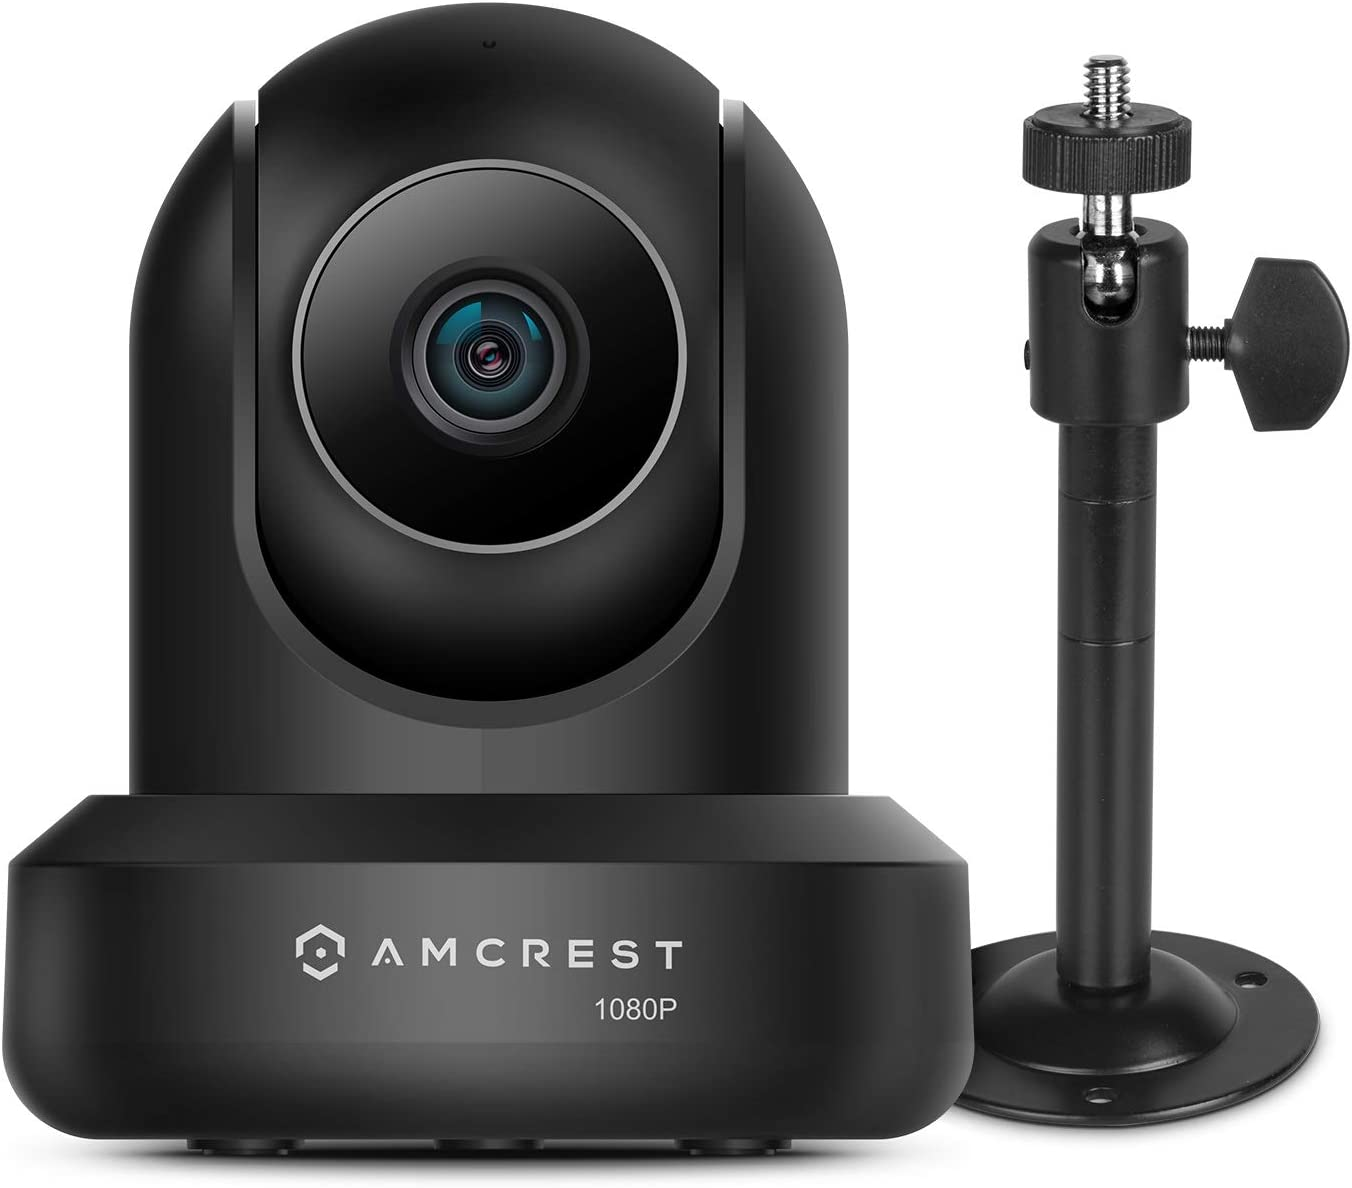 Amcrest New Genuine Lowest price challenge 1080p Home Security WiFi Tilt Pan Auto-Tra w Camera